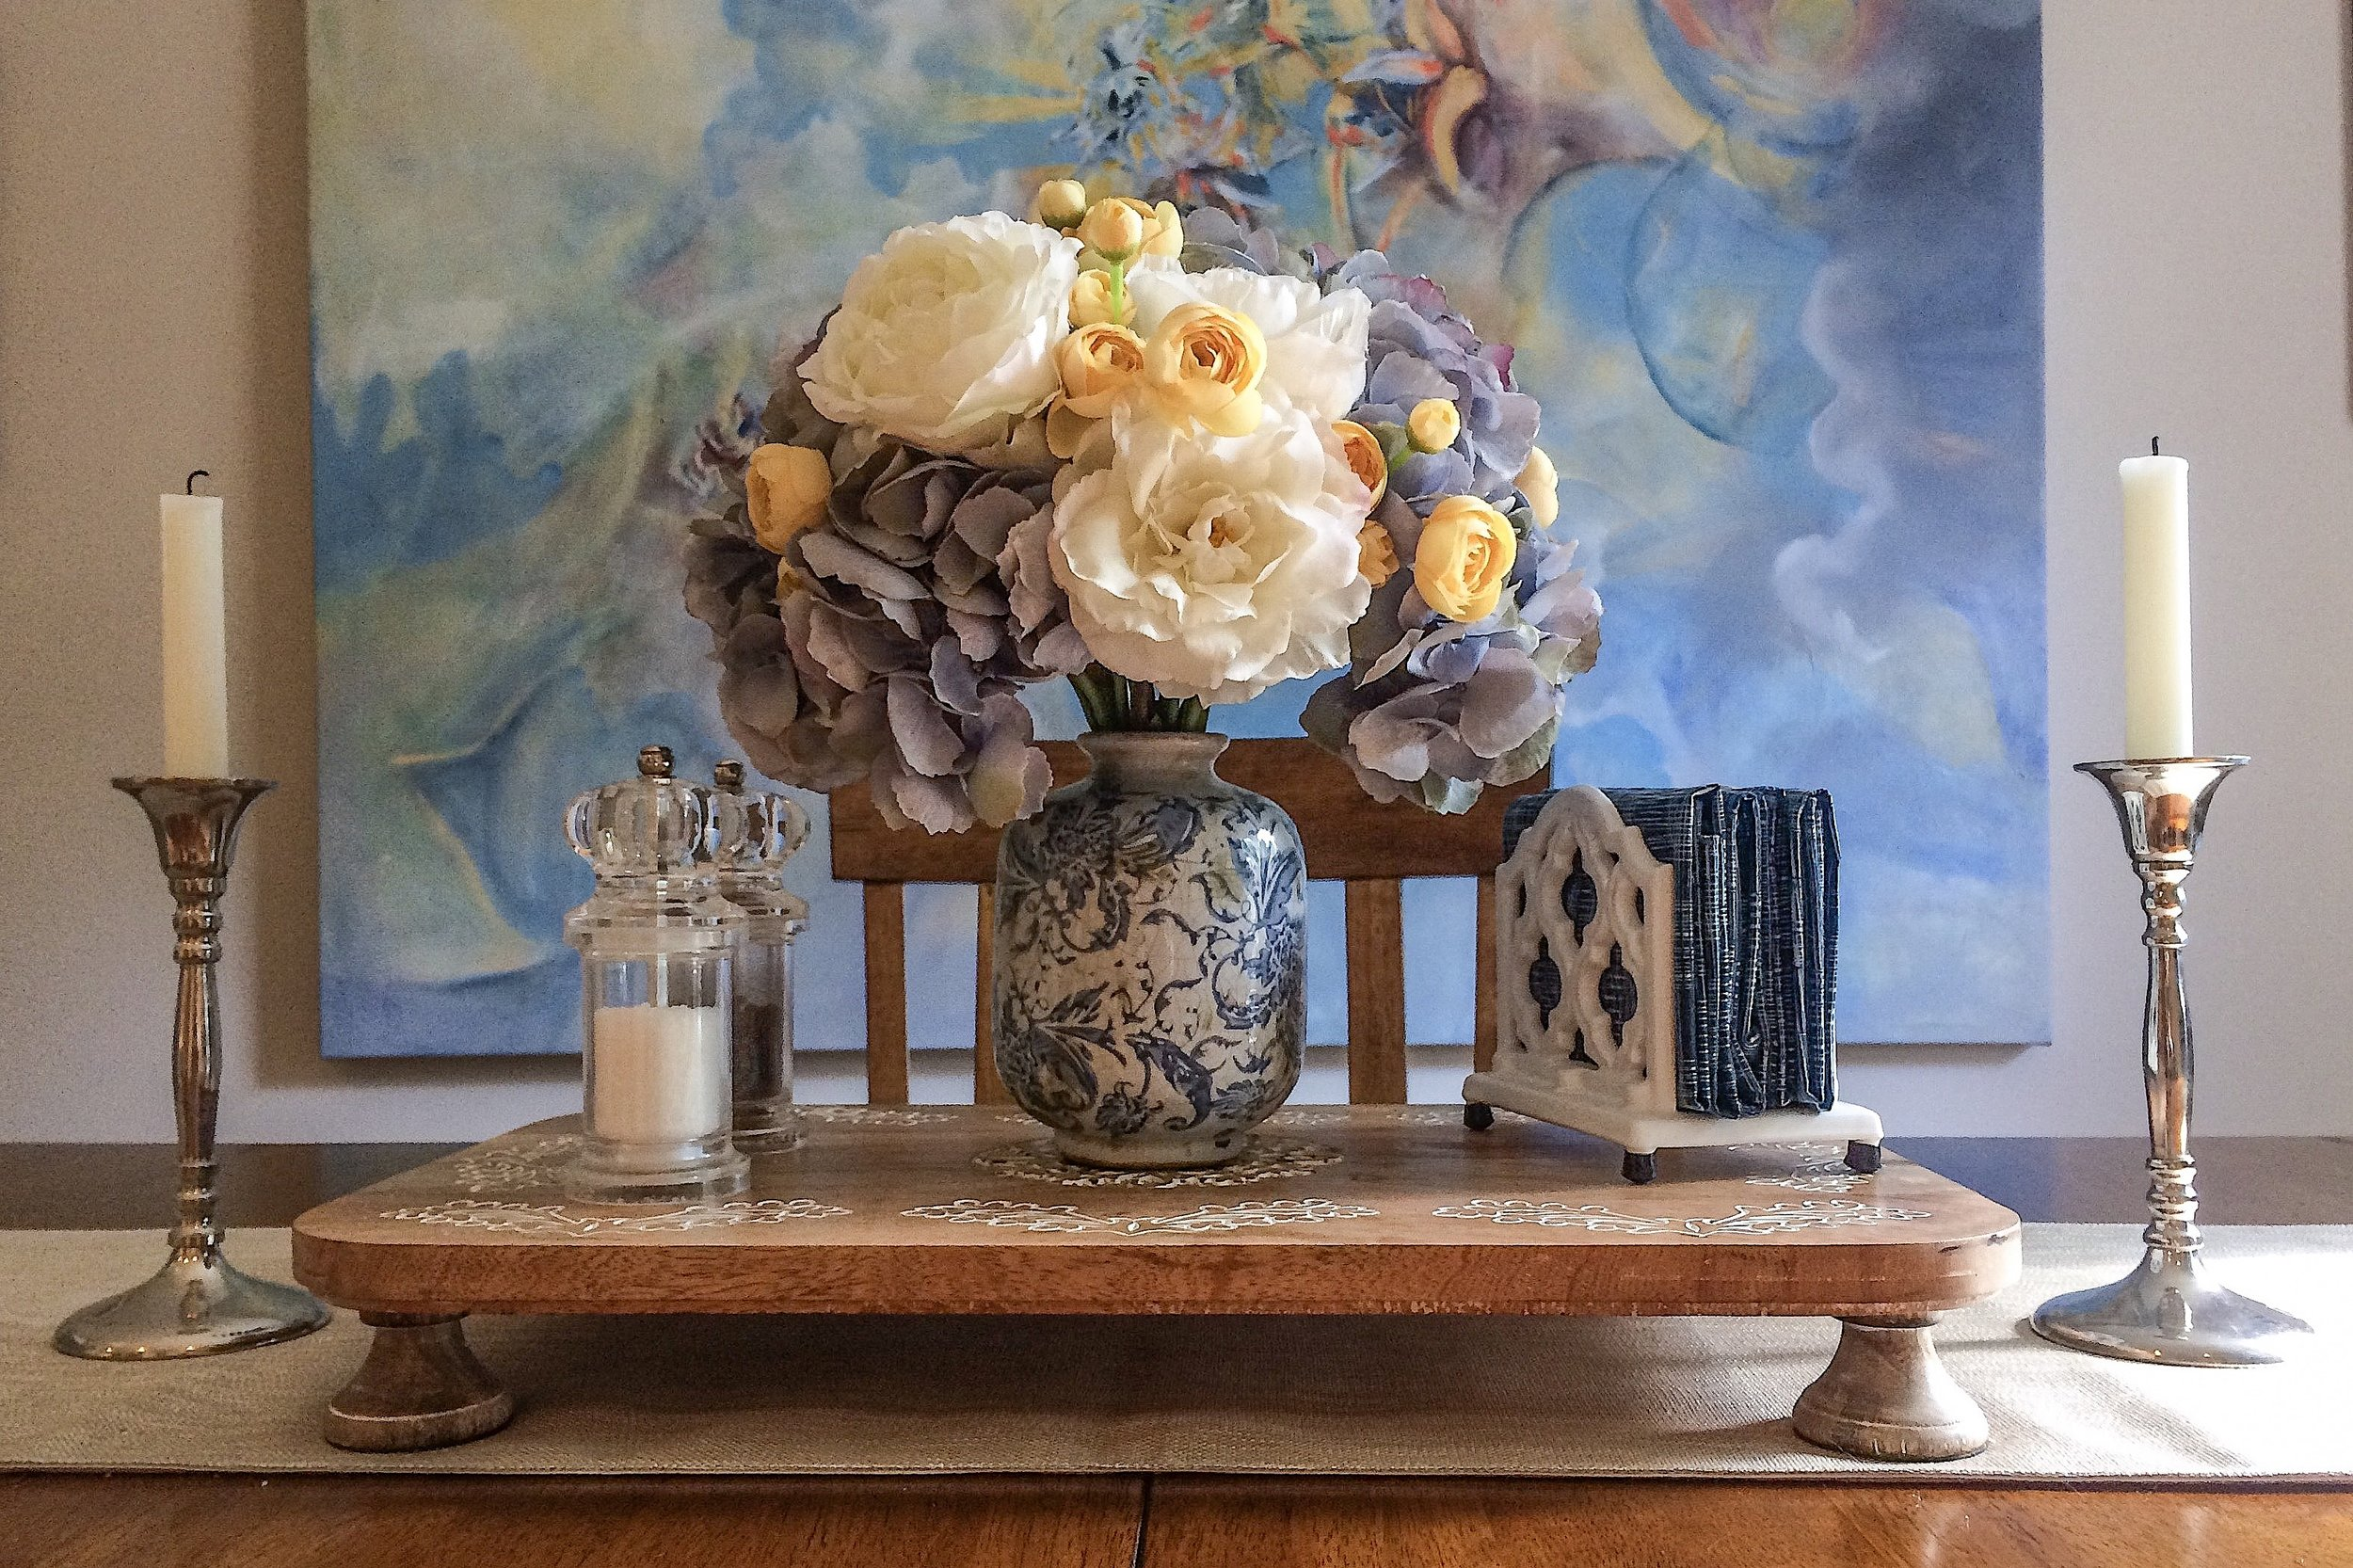 Spring Tablescape.  The faux floral arrangement of pale blue hydrangeas, white roses, and yellow ranunculus captures the pastel hues of spring and ties into the colors of the artwork in the background.